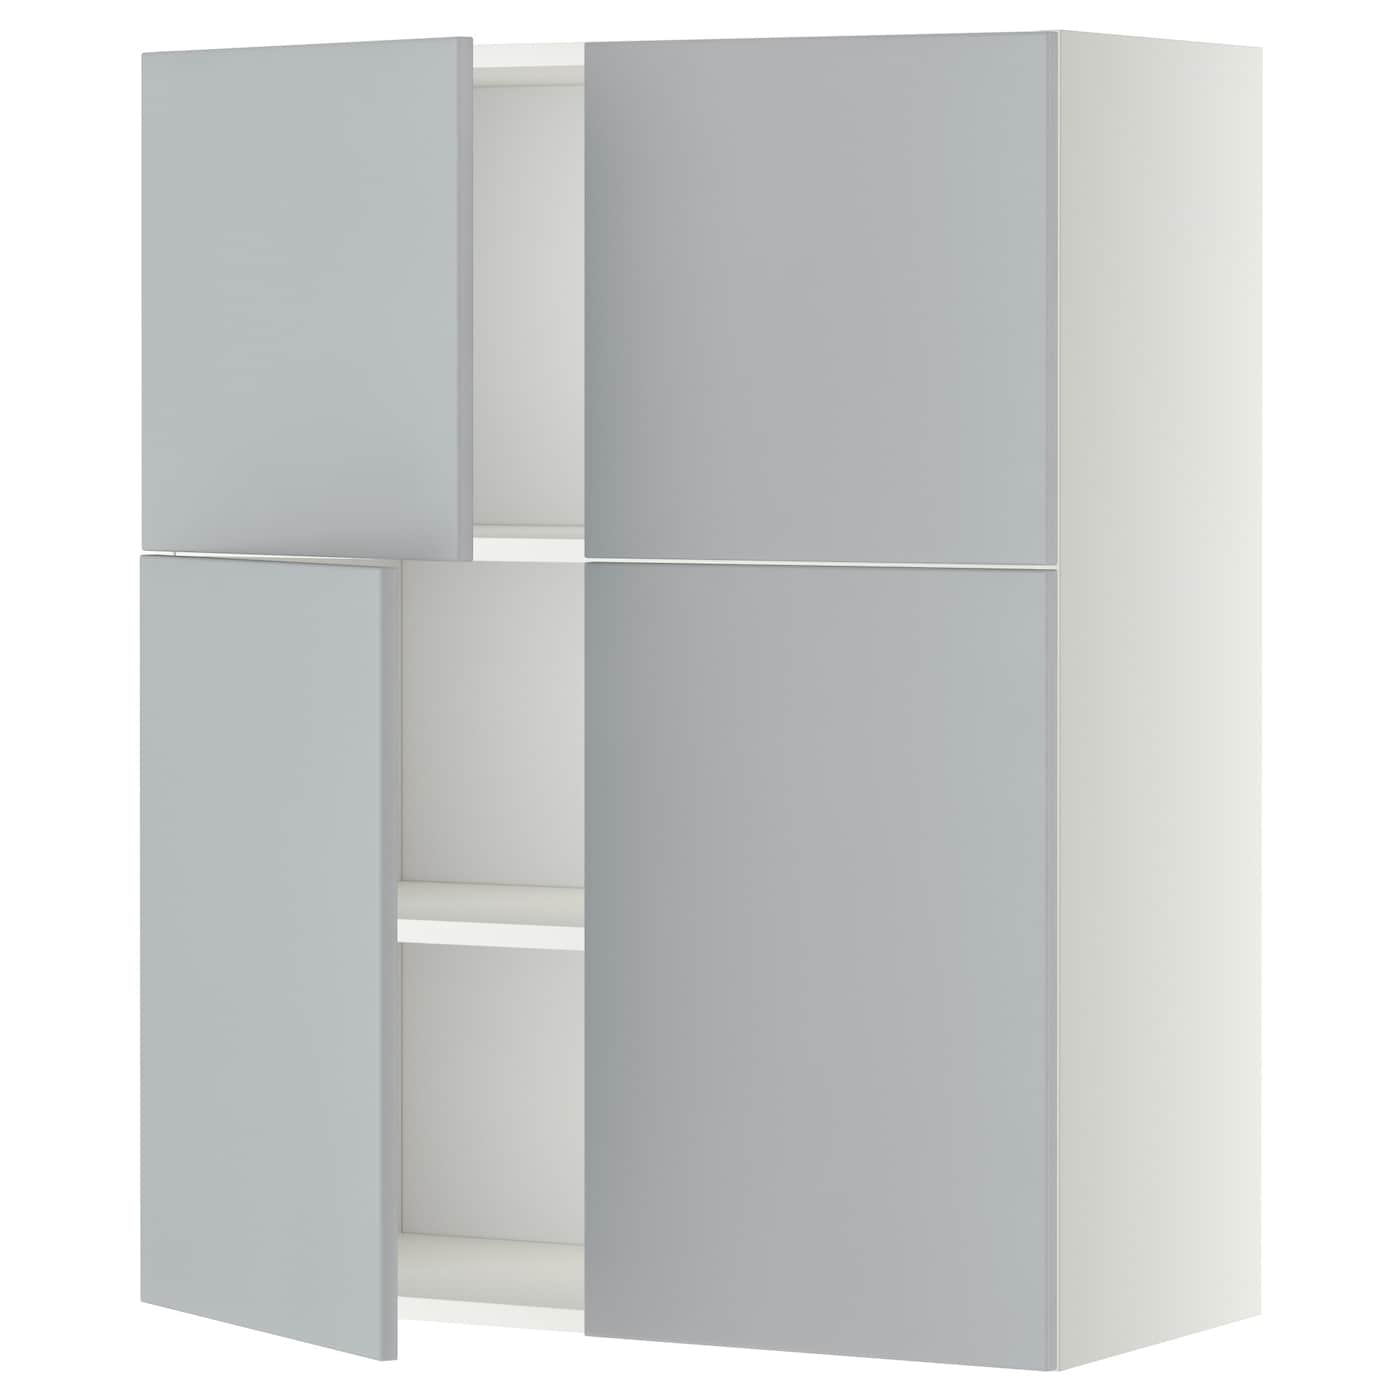 Metod wall cabinet with shelves 4 doors white veddinge for Idea kitchen cabinet doors